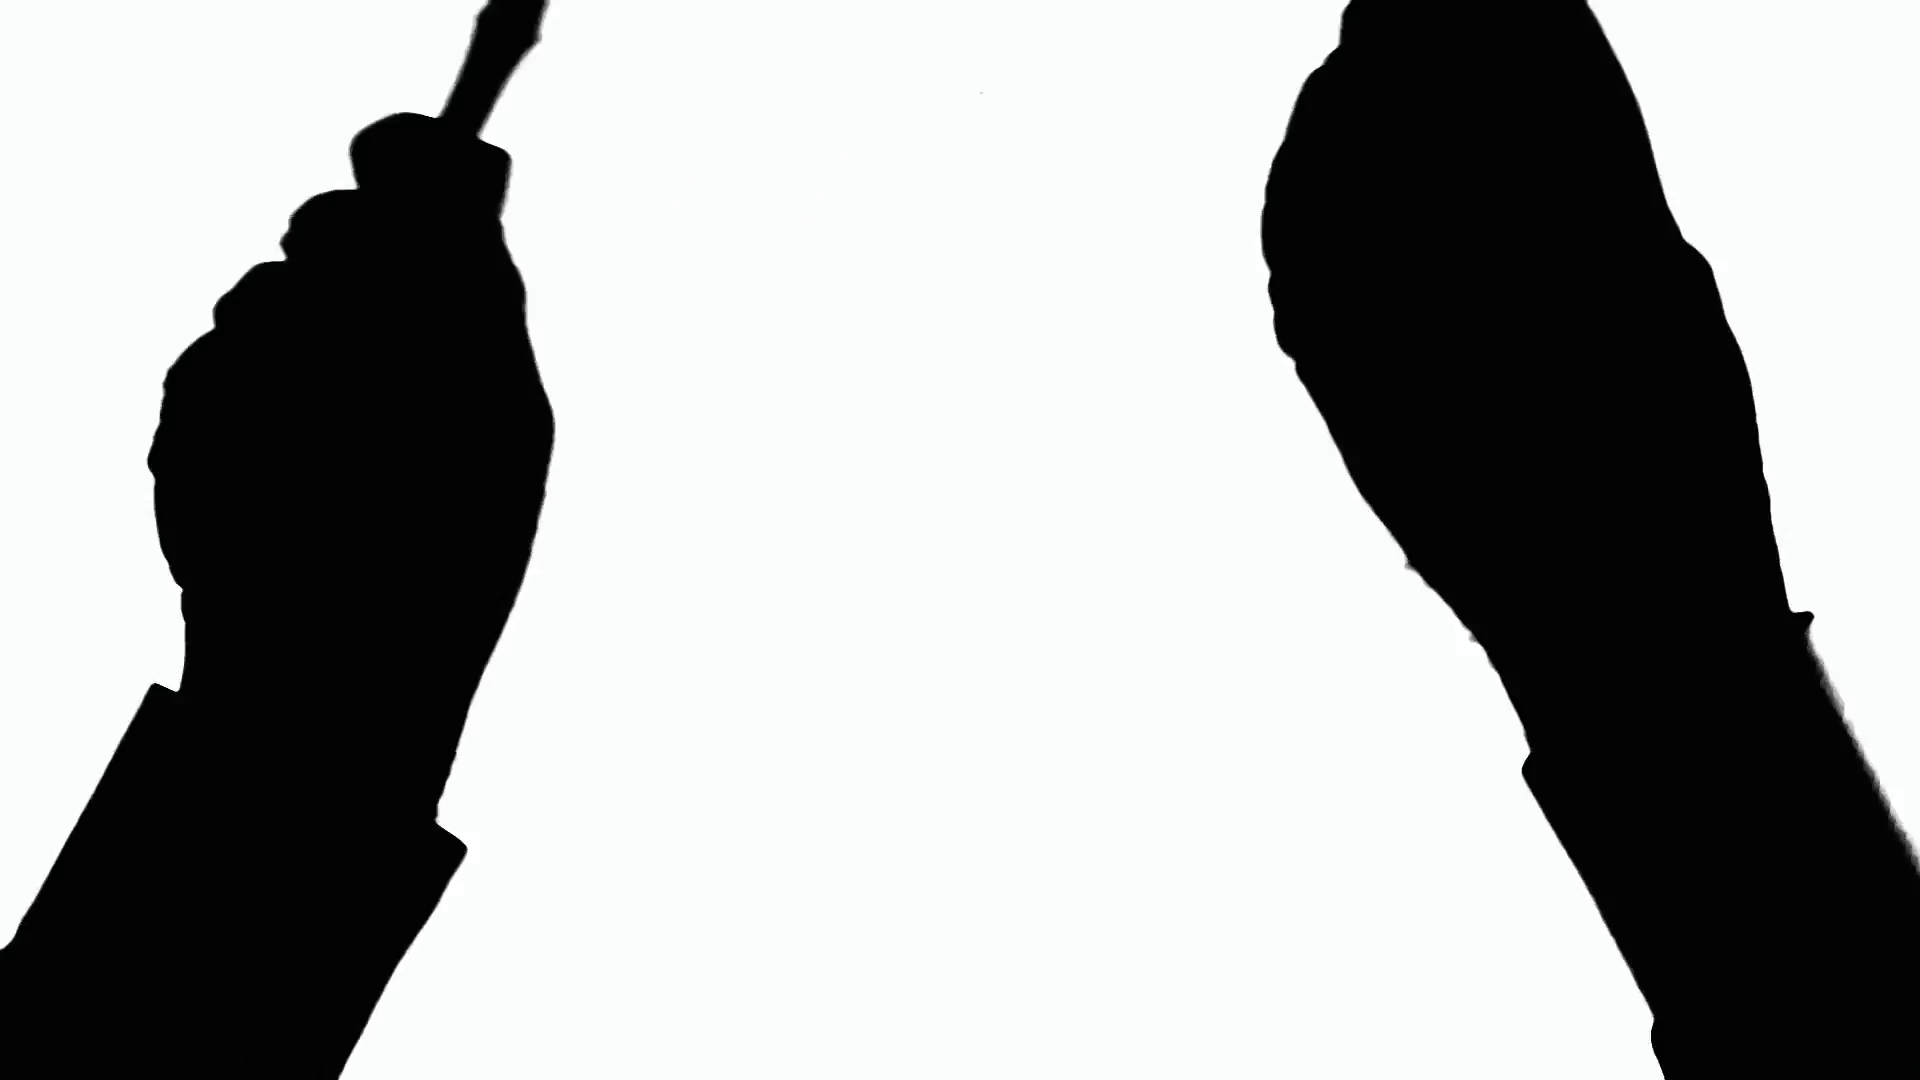 1920x1080 Orchestra Leader White Hands Silhouette 1. Silhouette Shot